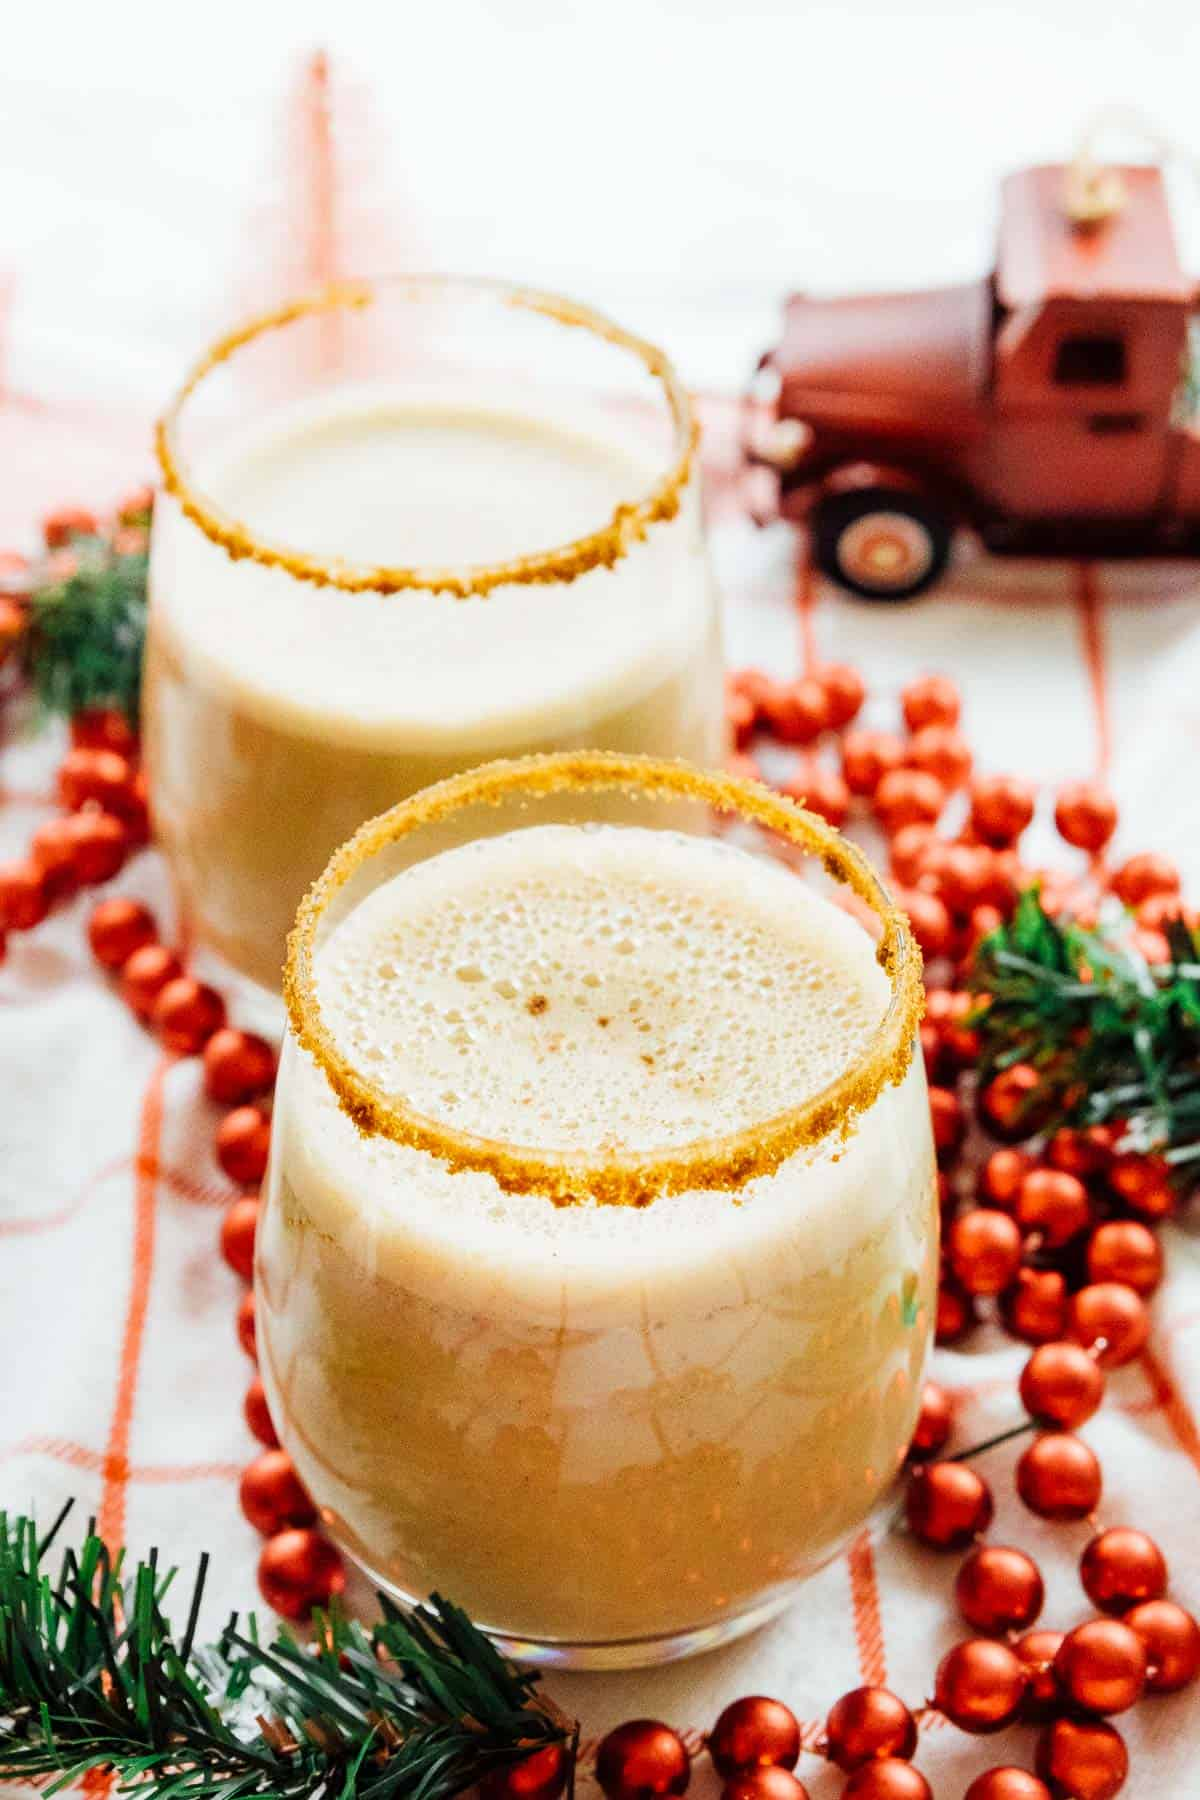 This Vegan Eggnog tastes so much like traditional eggnog it's unreal! It's creamy, comforting and SO easy to whip up in your blender! via https://jessicainthekitchen.com